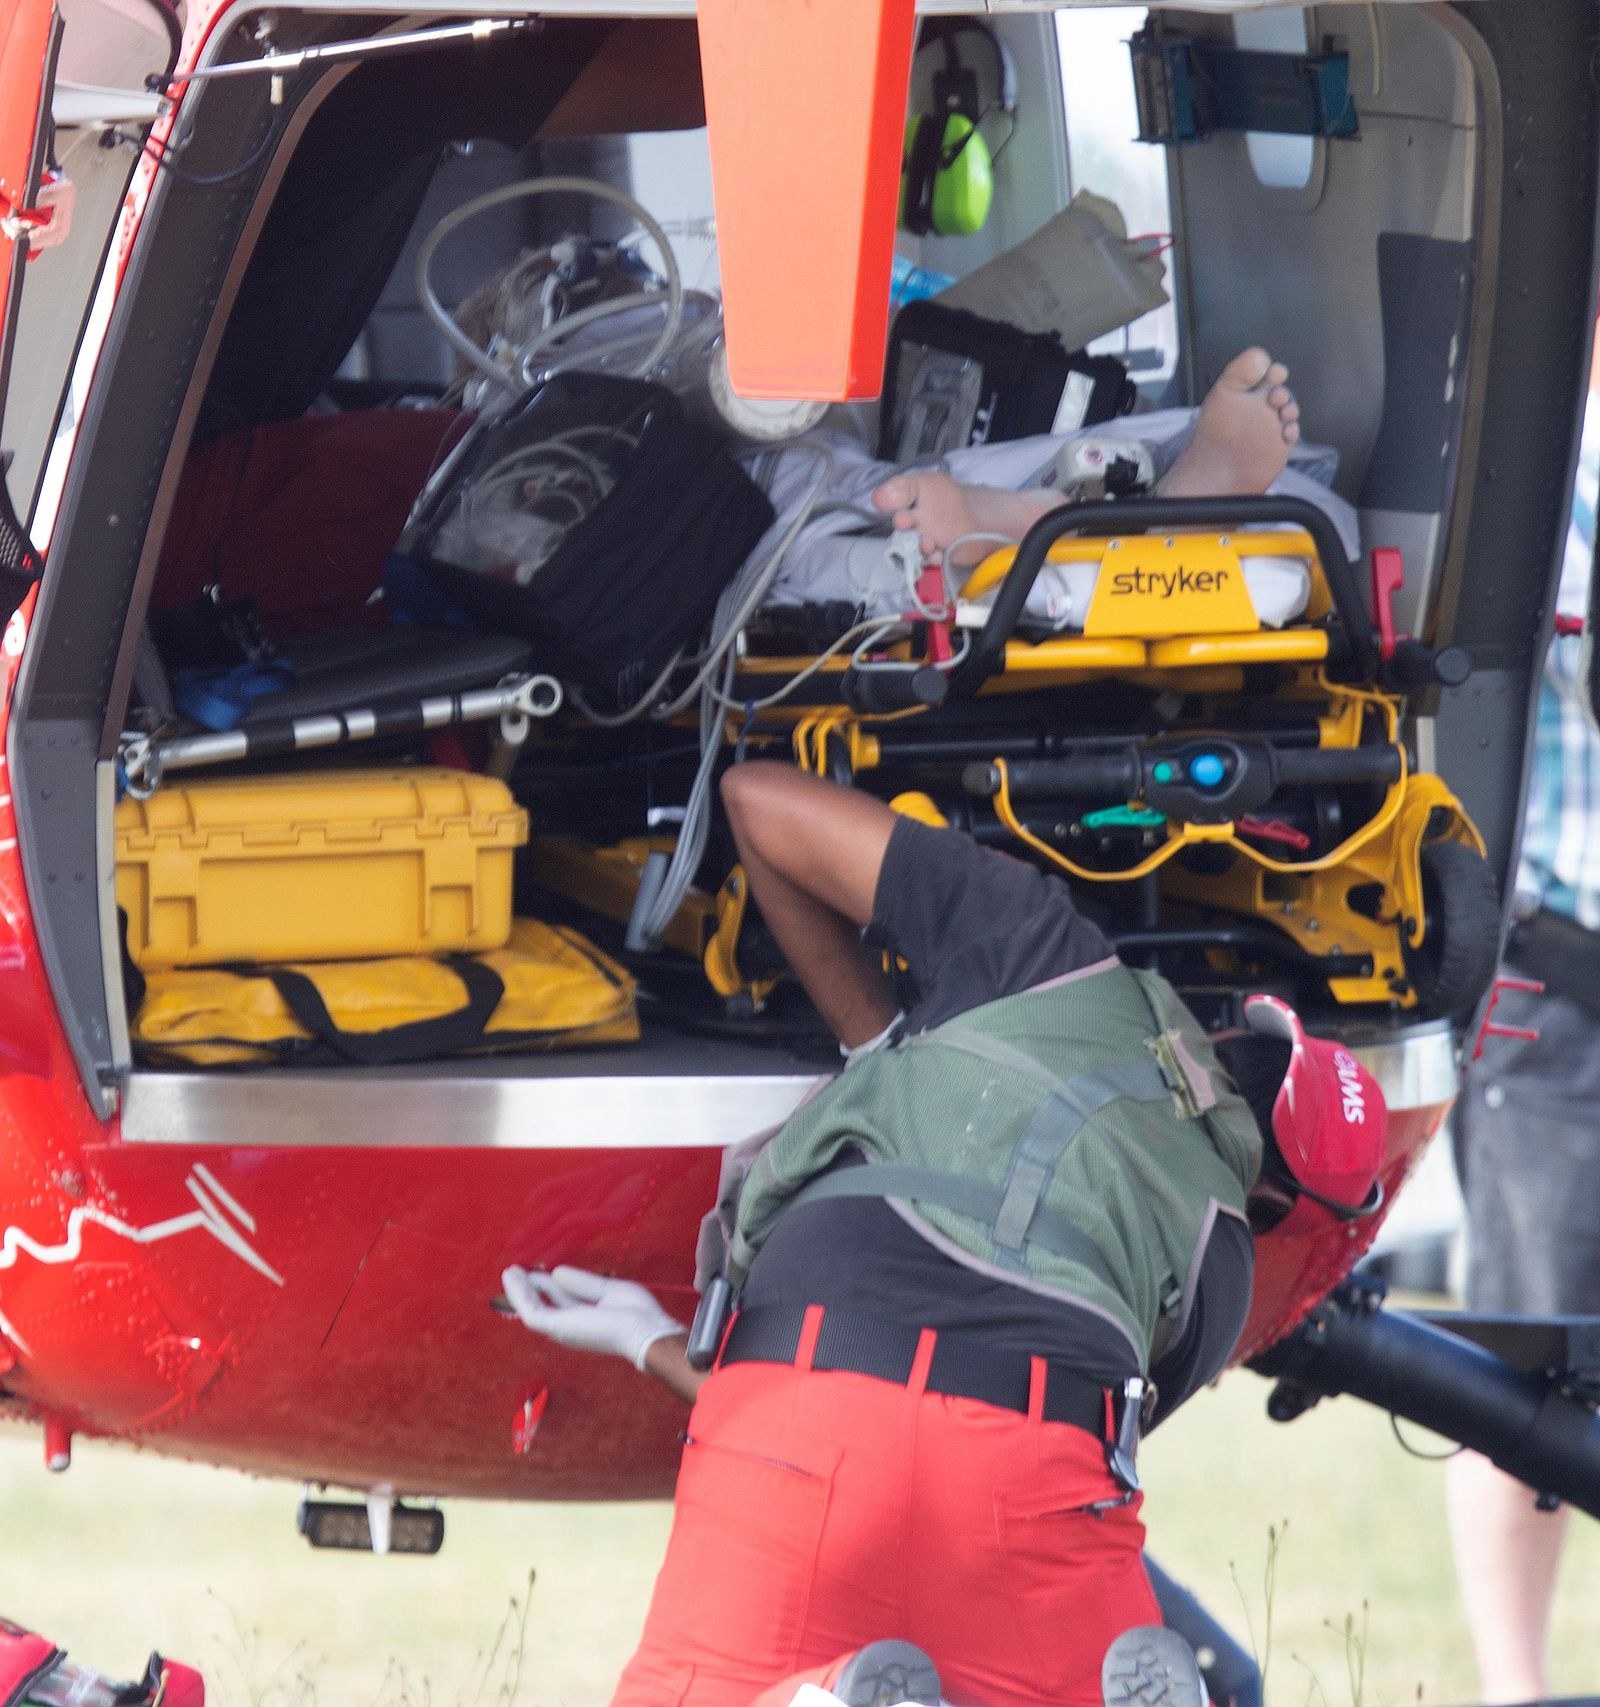 Emergency services attend to an injured person arriving at the Whakatane Airfield after the volcanic eruption Monday, Dec. 9, 2019, on White Island, New Zealand. (Alan Gibson/New Zealand Herald via AP)